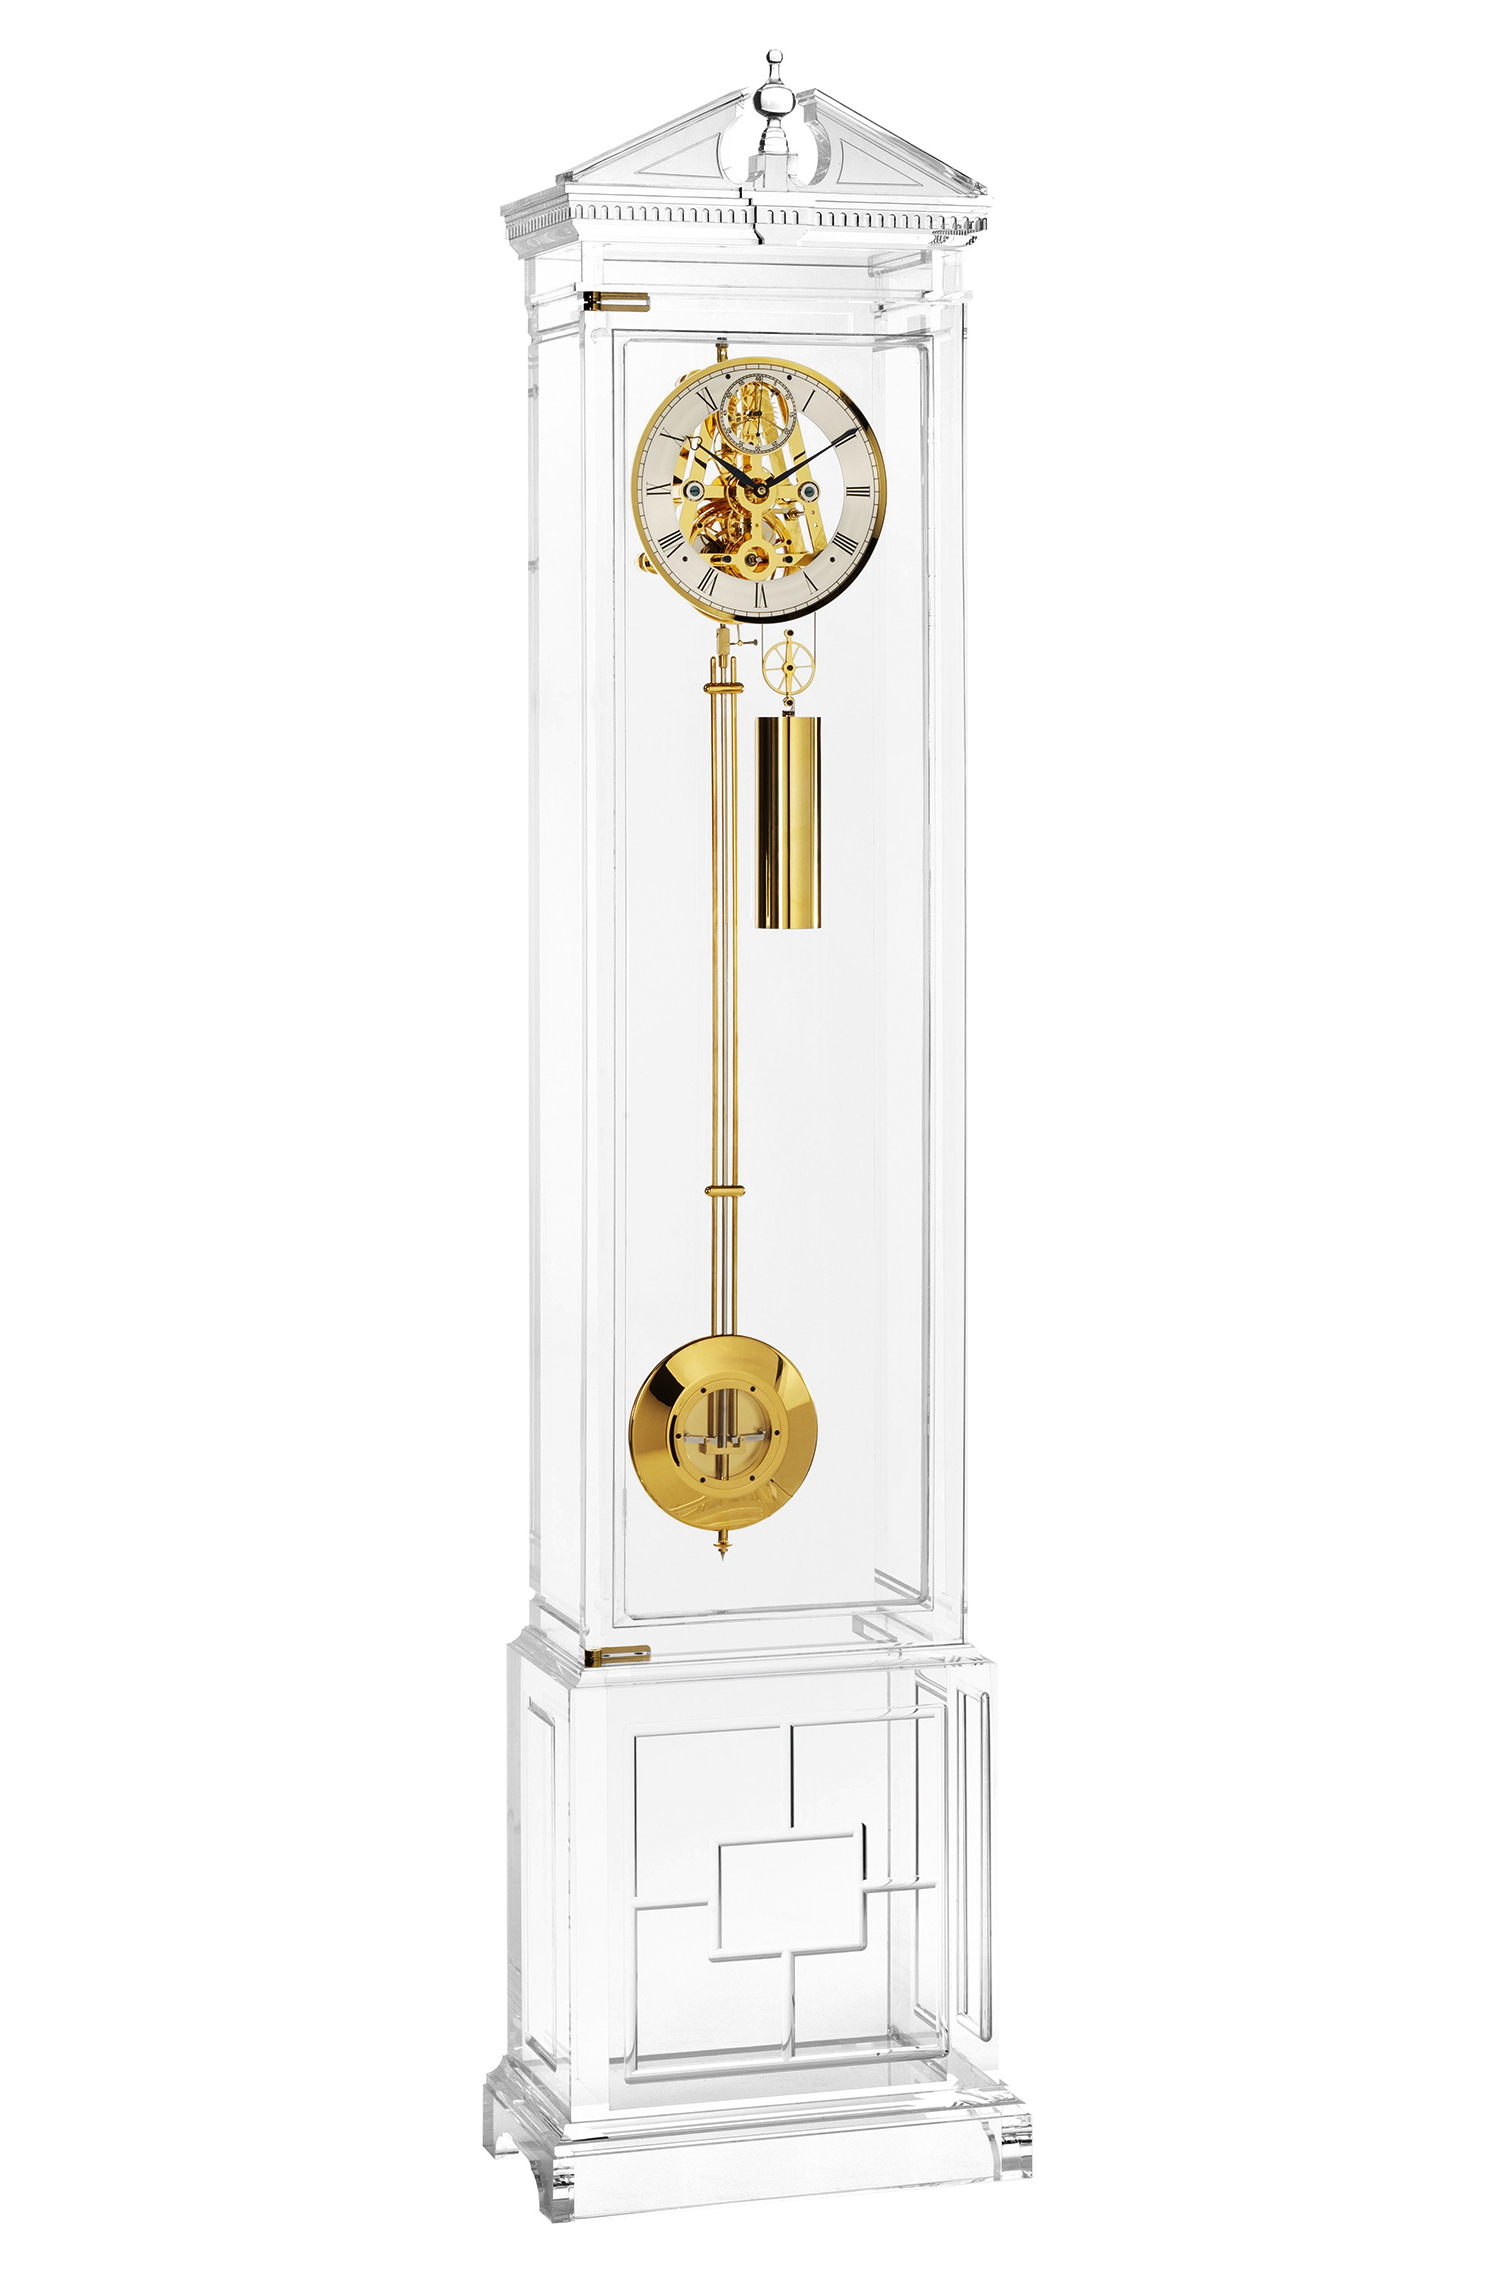 Perspex grandfather clock kicks off auction in aid of QEST